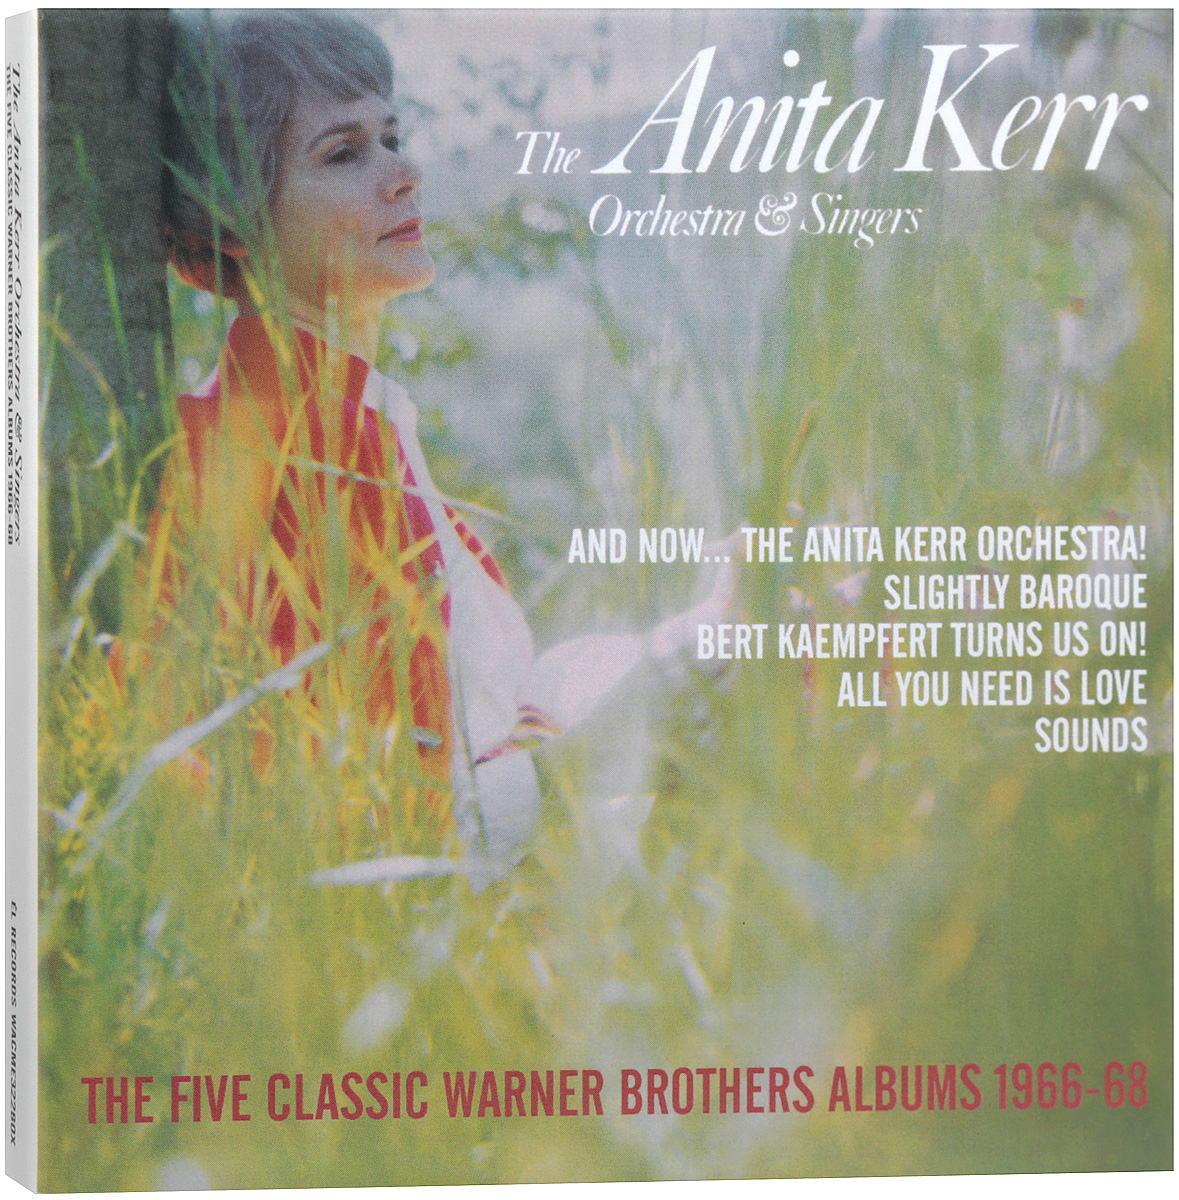 The Anita Kerr Orchestra,Anita Kerr,The Anita Kerr Singers The Anita Kerr Orchestra & Singers. The Five Classic Warner Brothers Albums 1966-68 (5 CD) dental kerr finishing polishing assorted kit cup brushes